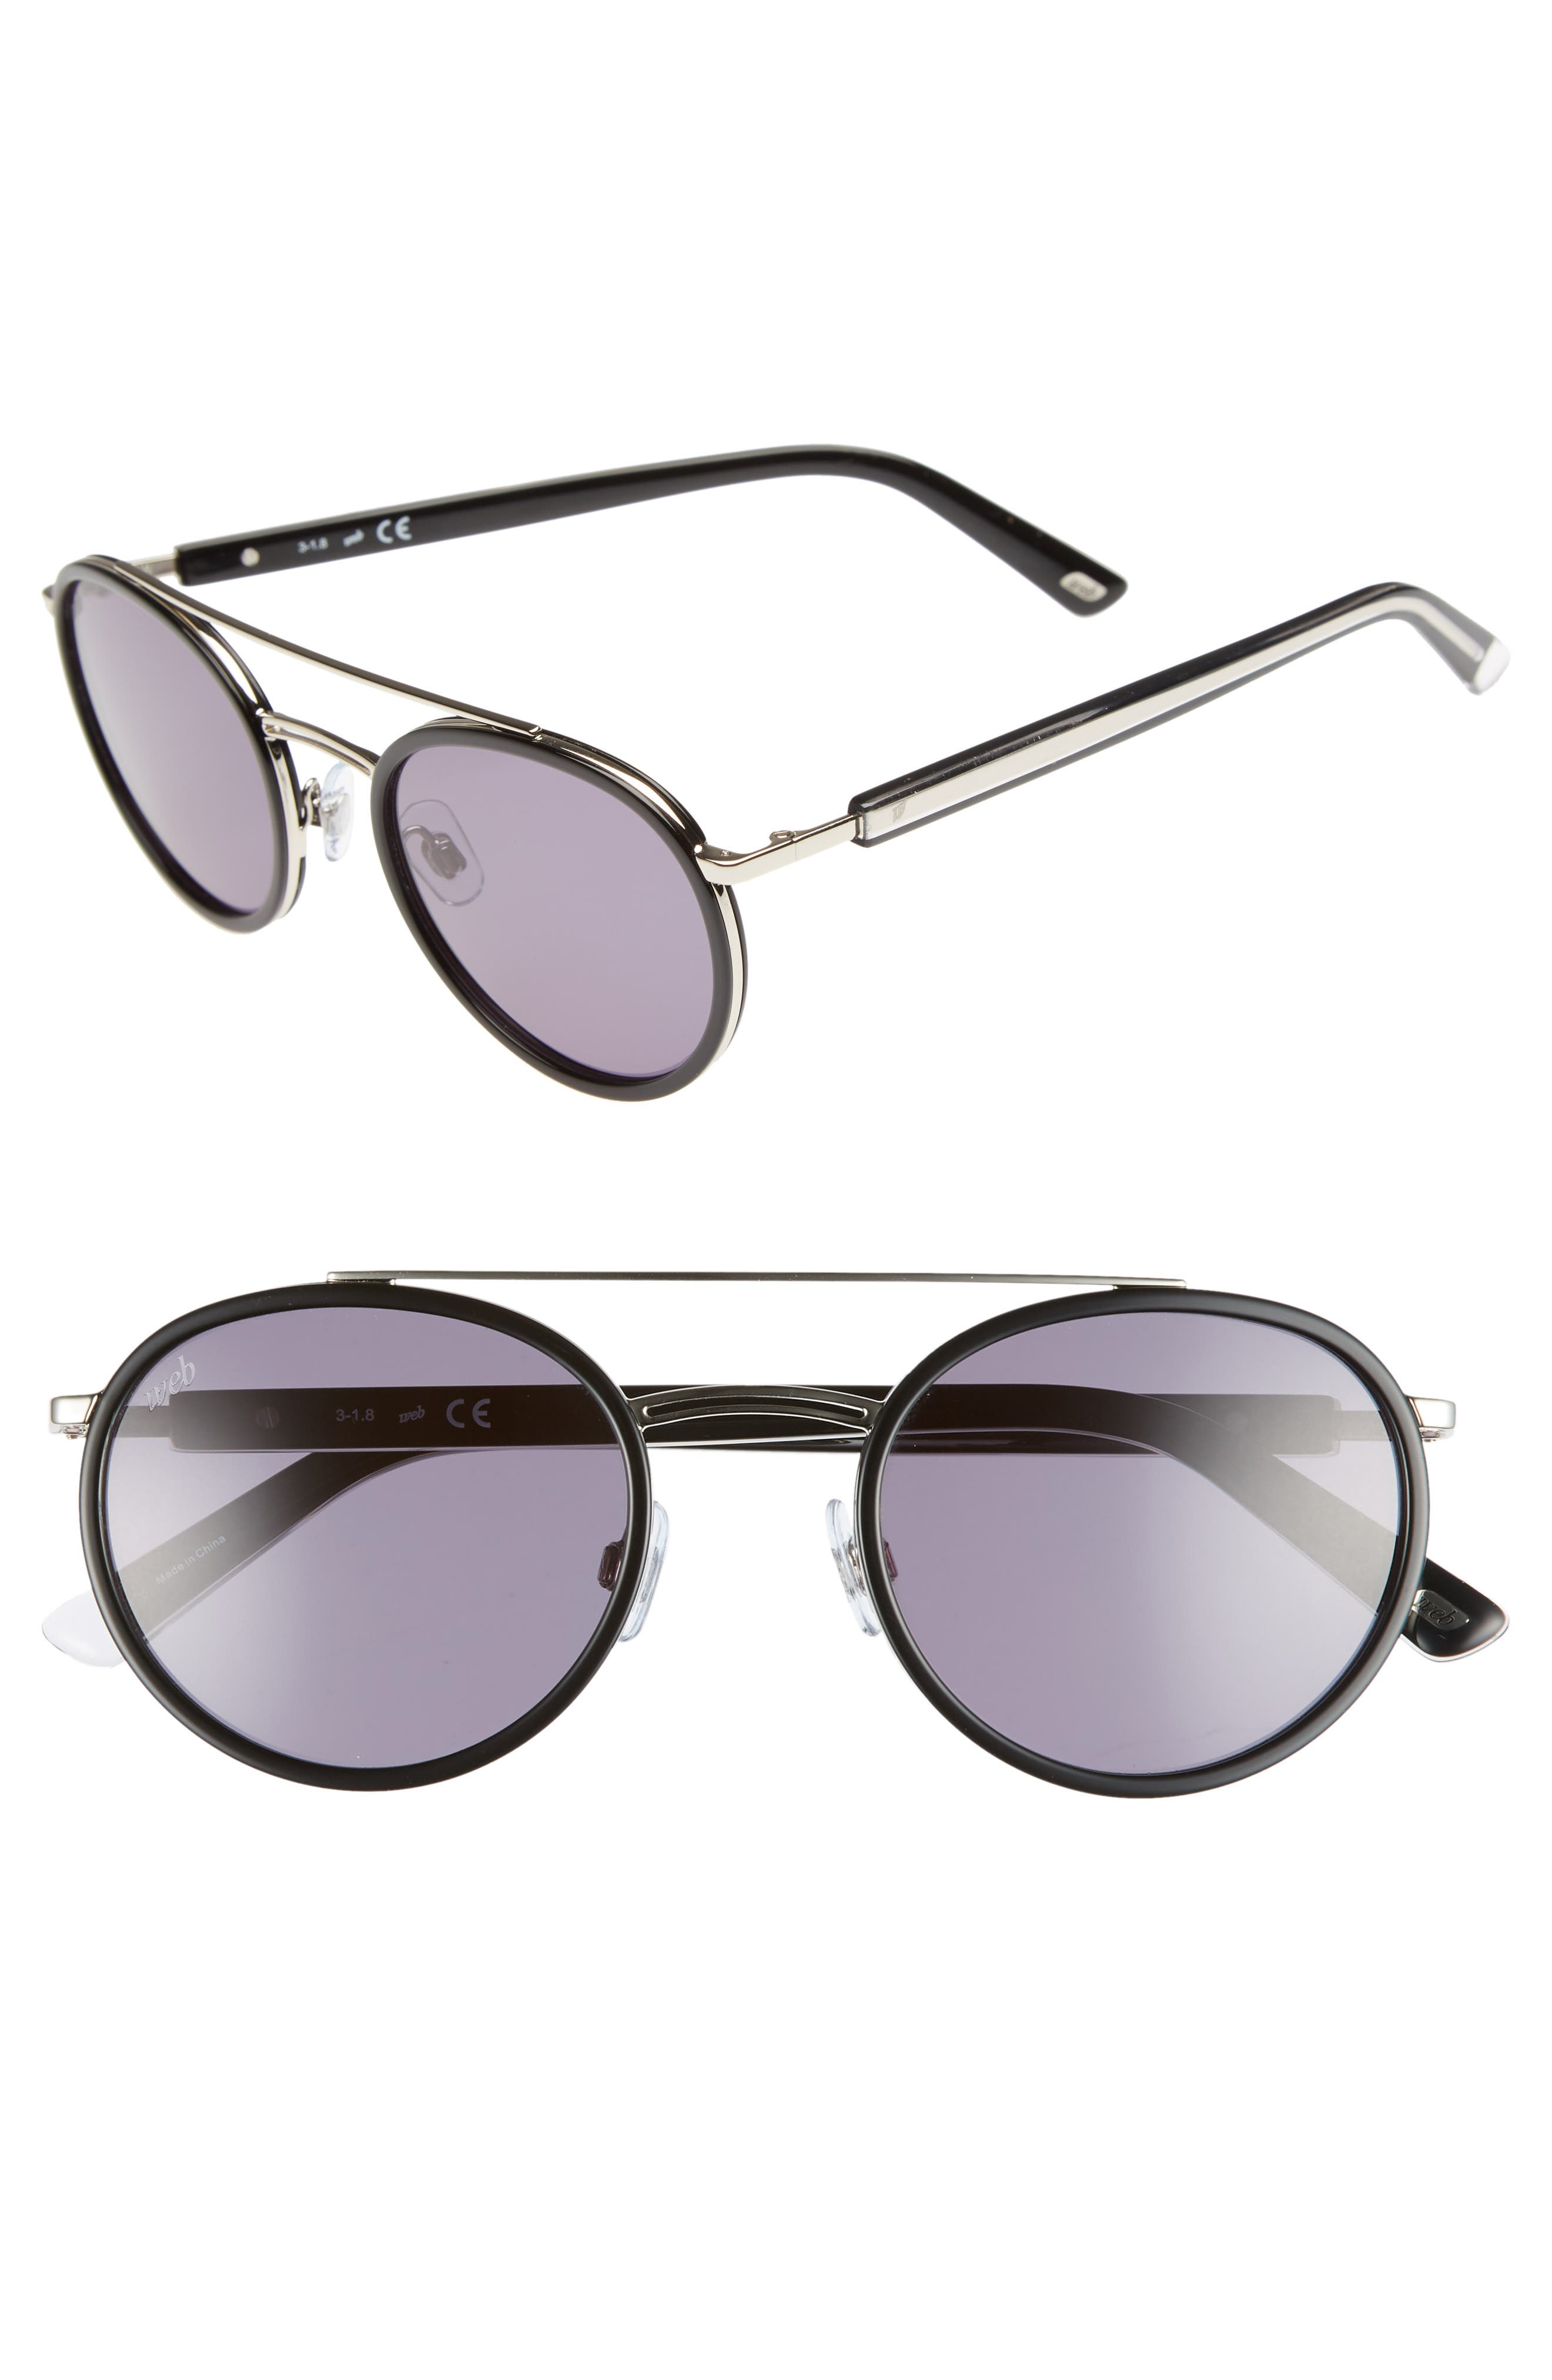 52mm Aviator Sunglasses,                             Main thumbnail 1, color,                             SHINY BLACK/ SMOKE